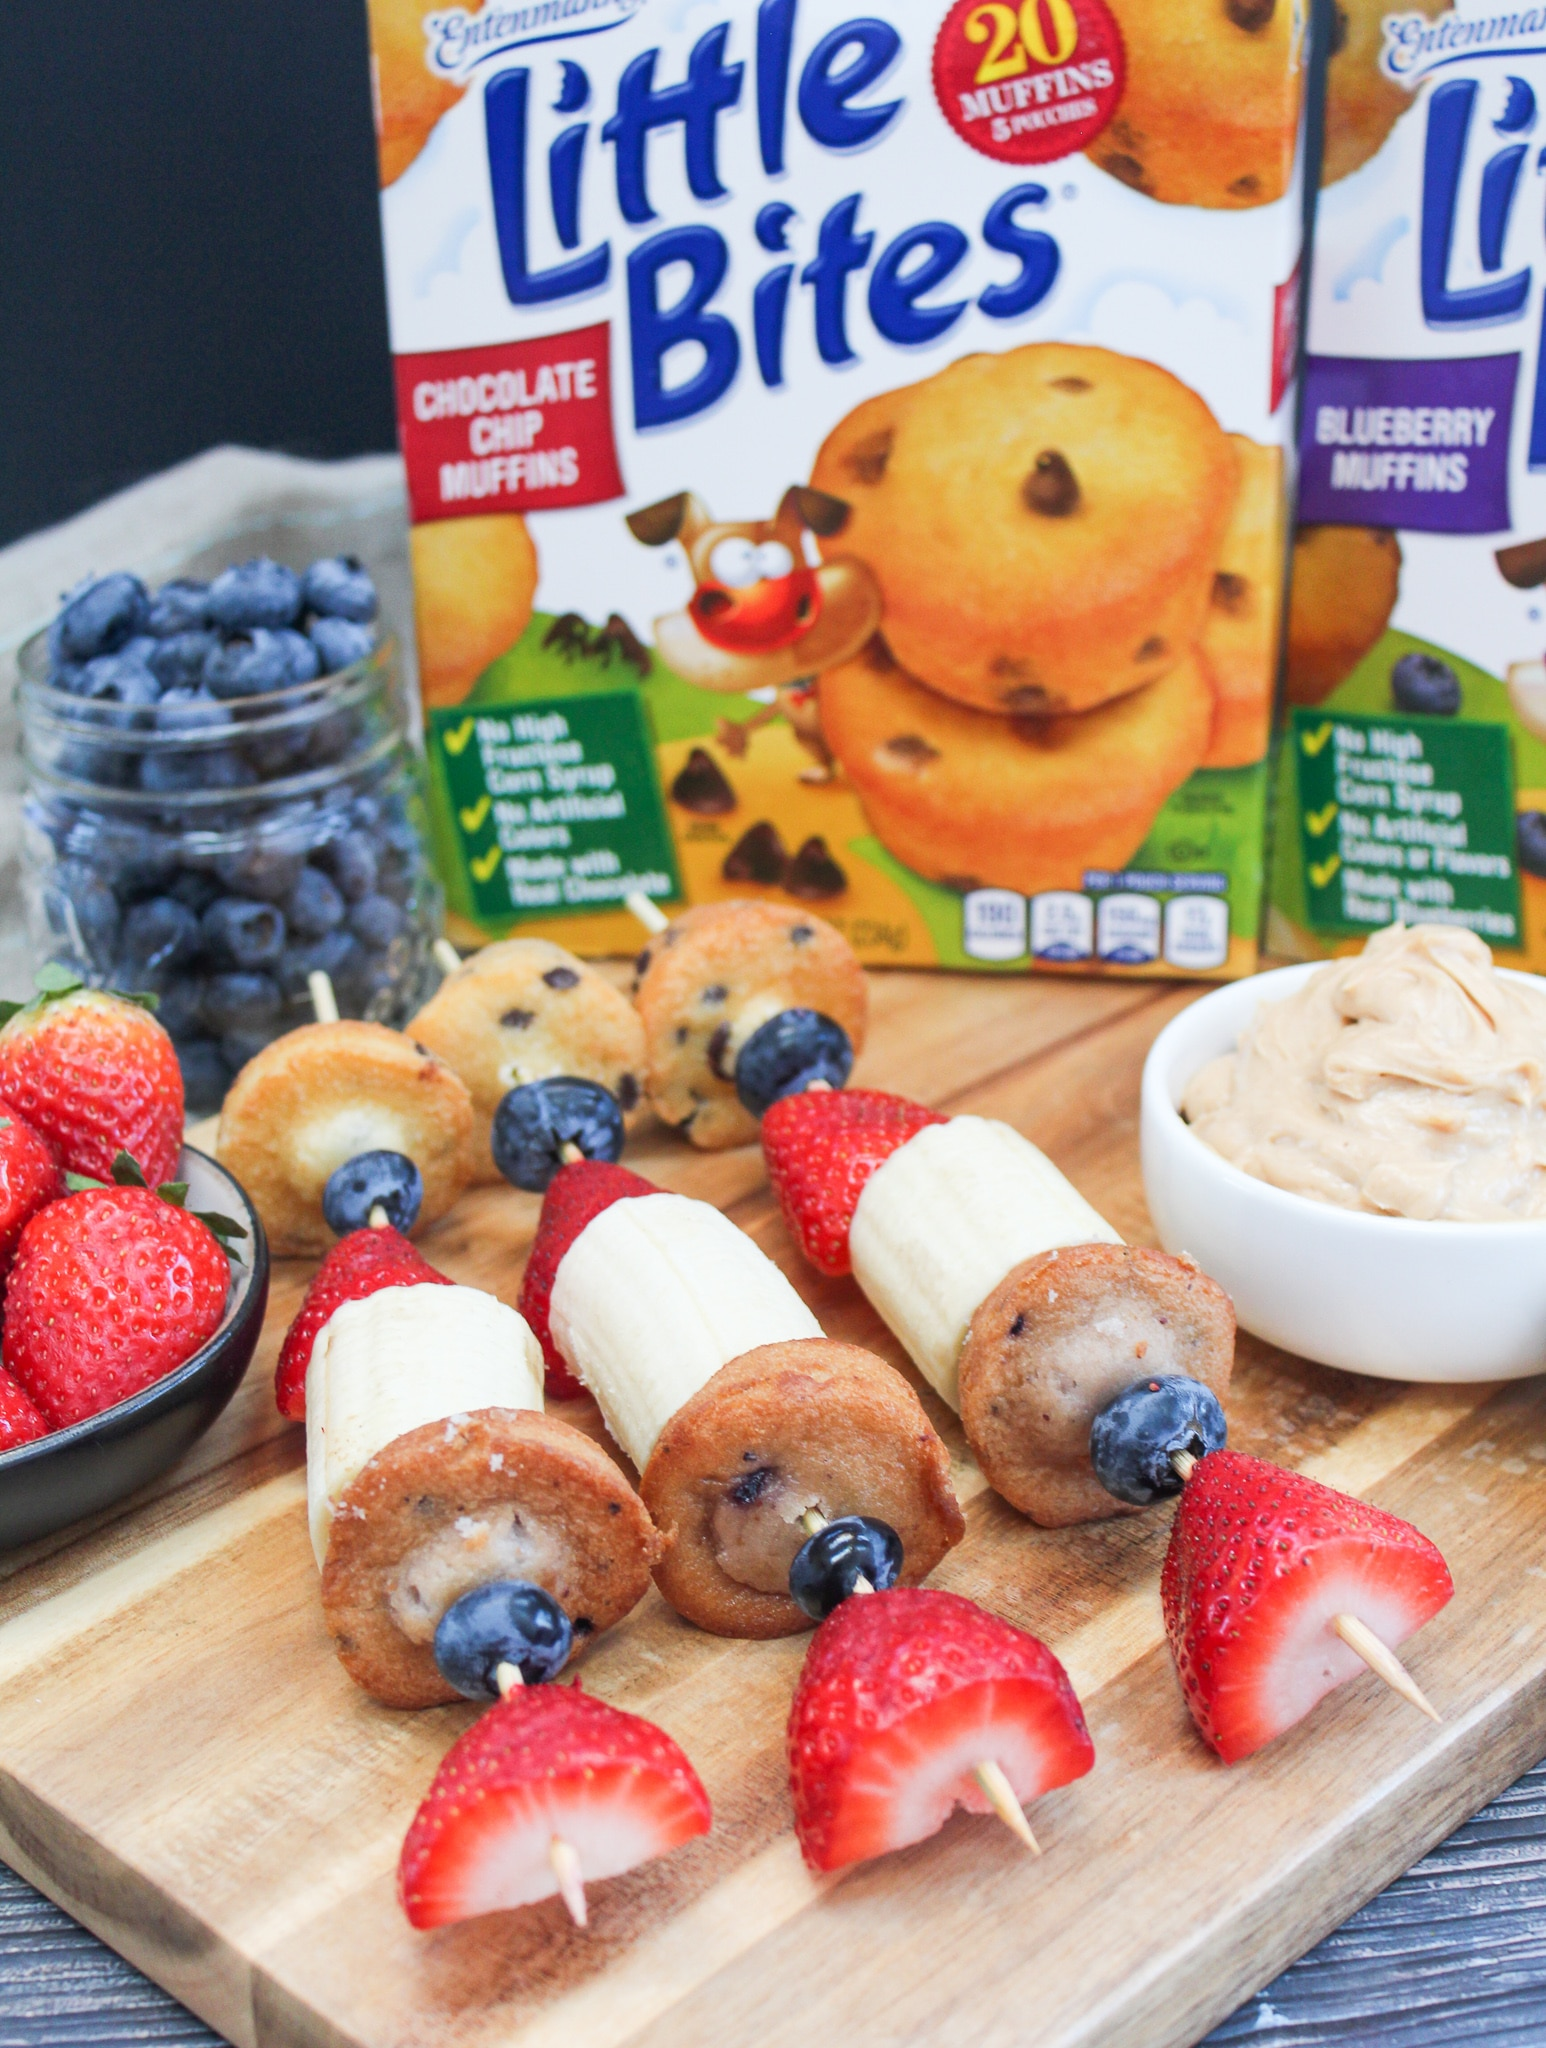 muffins and fruit on a skewer